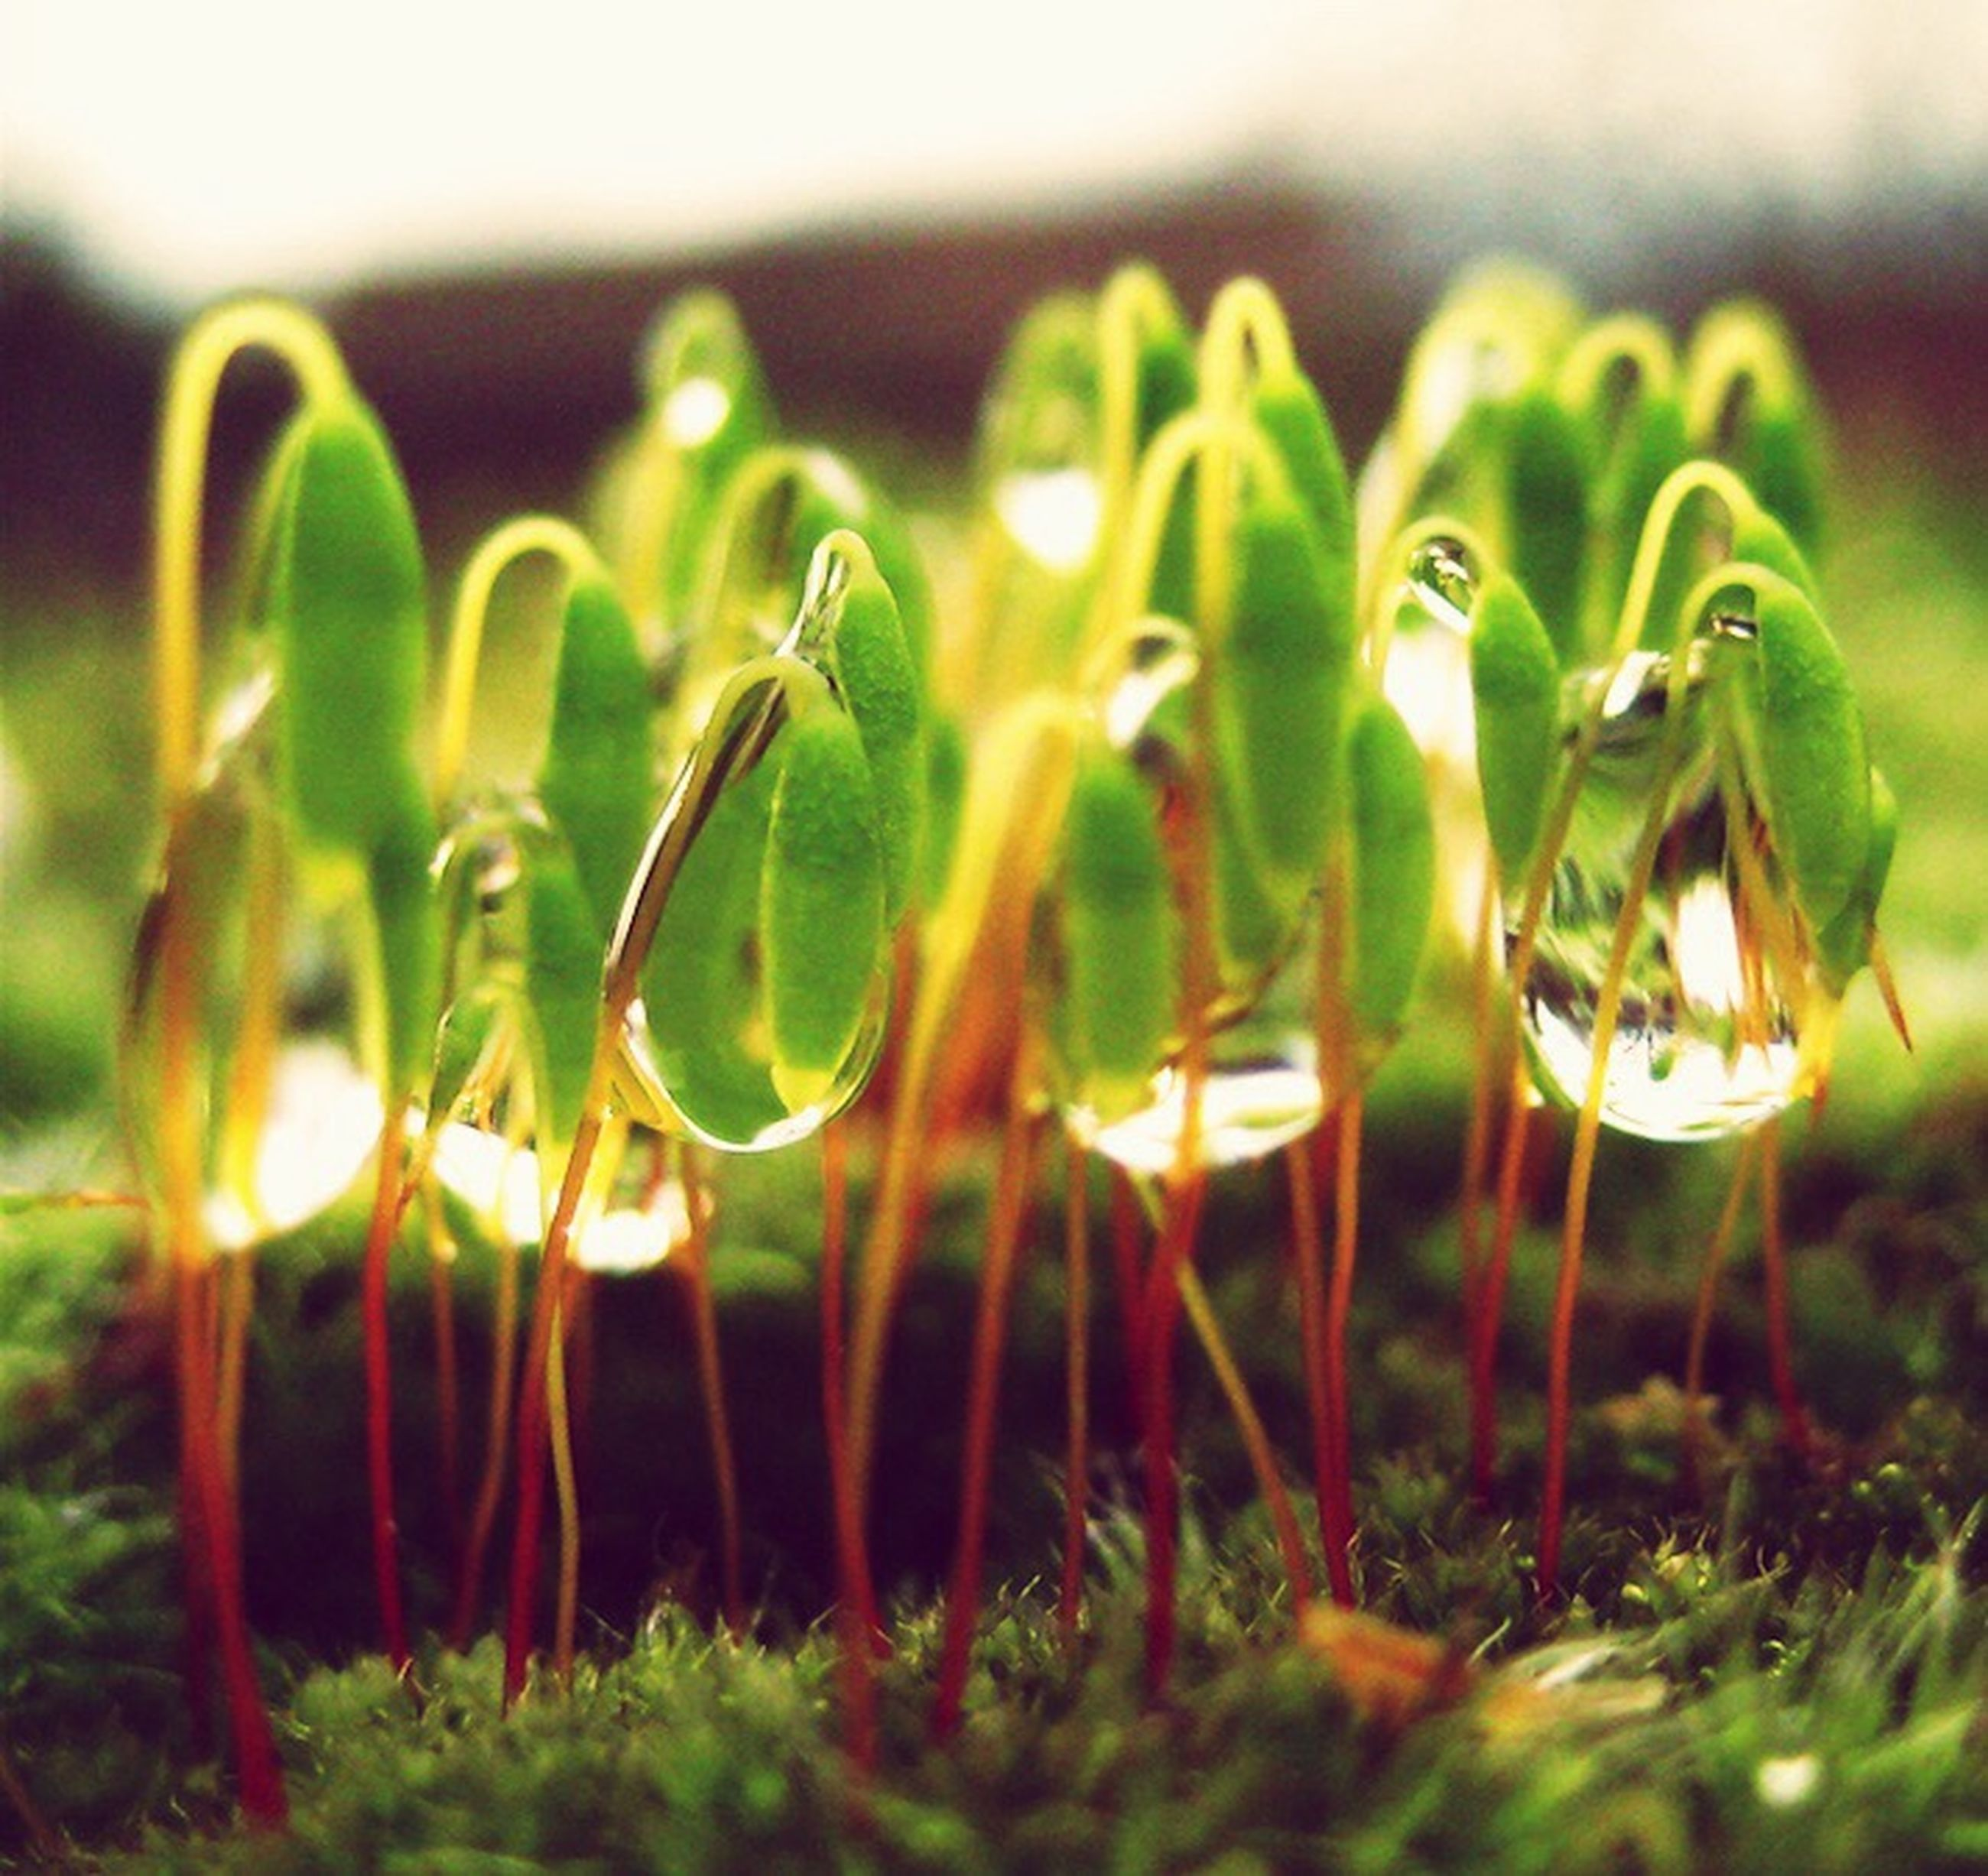 growth, focus on foreground, plant, close-up, green color, field, selective focus, nature, grass, agriculture, freshness, no people, beauty in nature, growing, tranquility, farm, stem, day, rural scene, crop